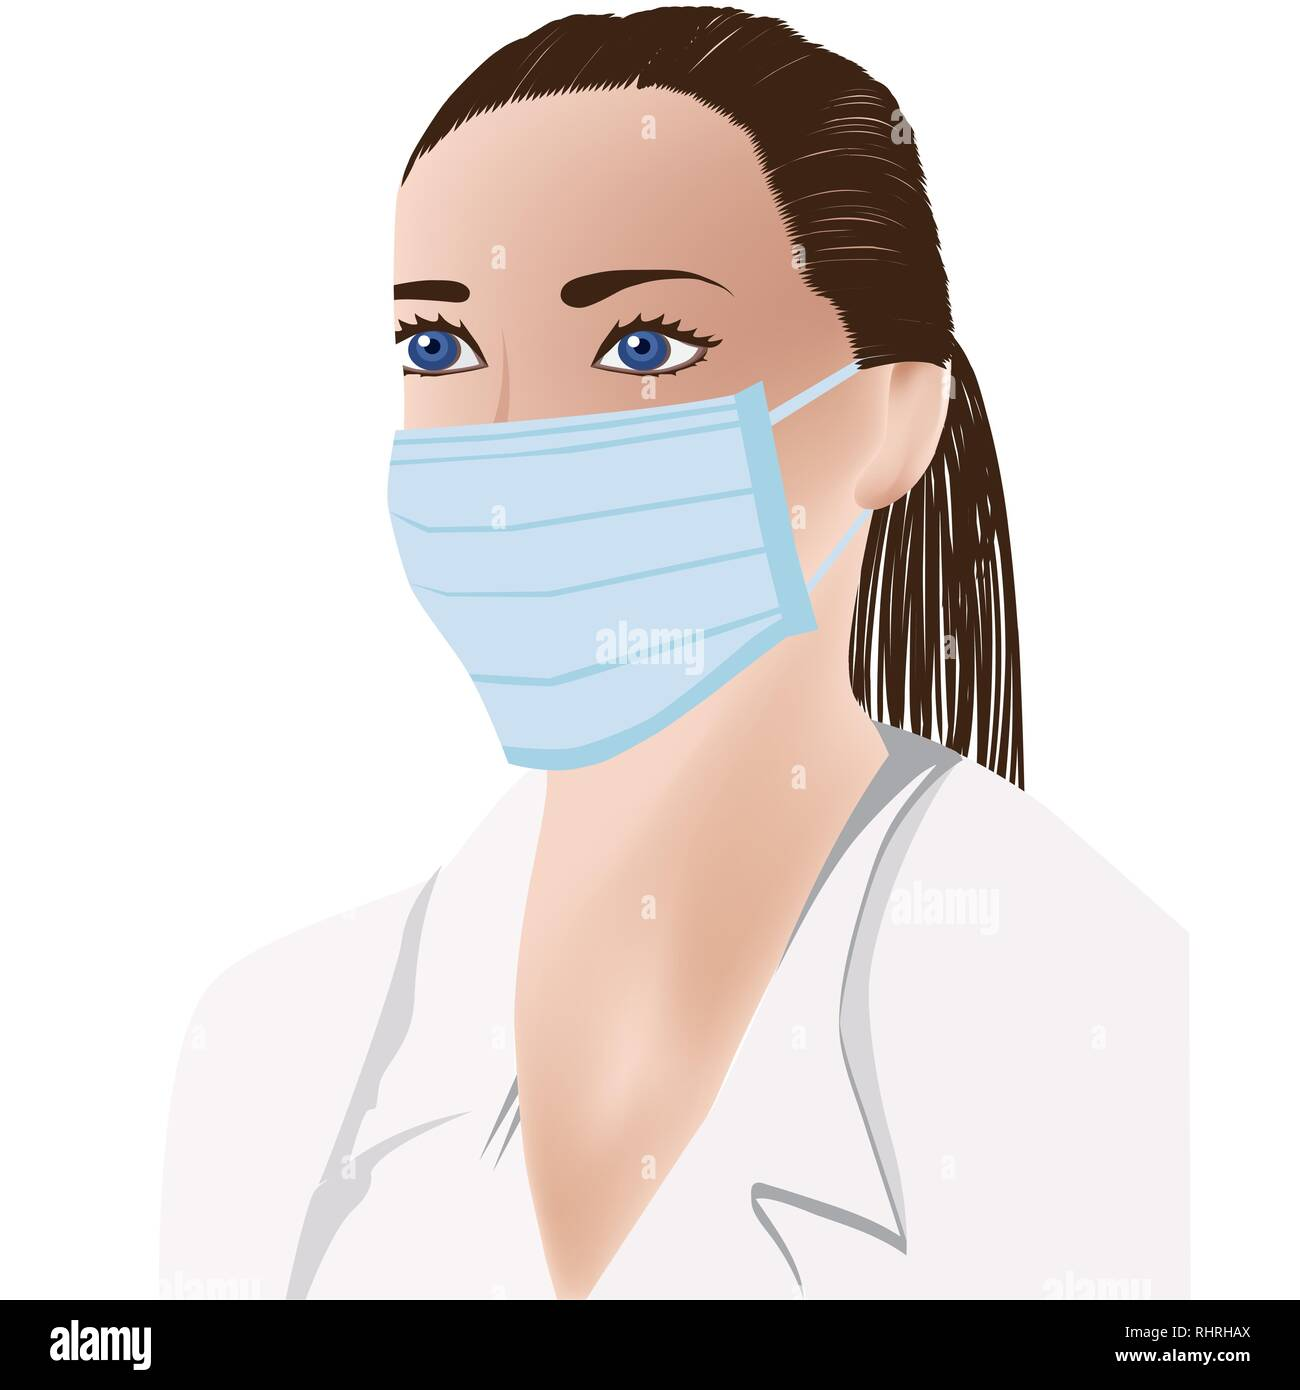 female doctor, medical mask on face, white uniform - Stock Image